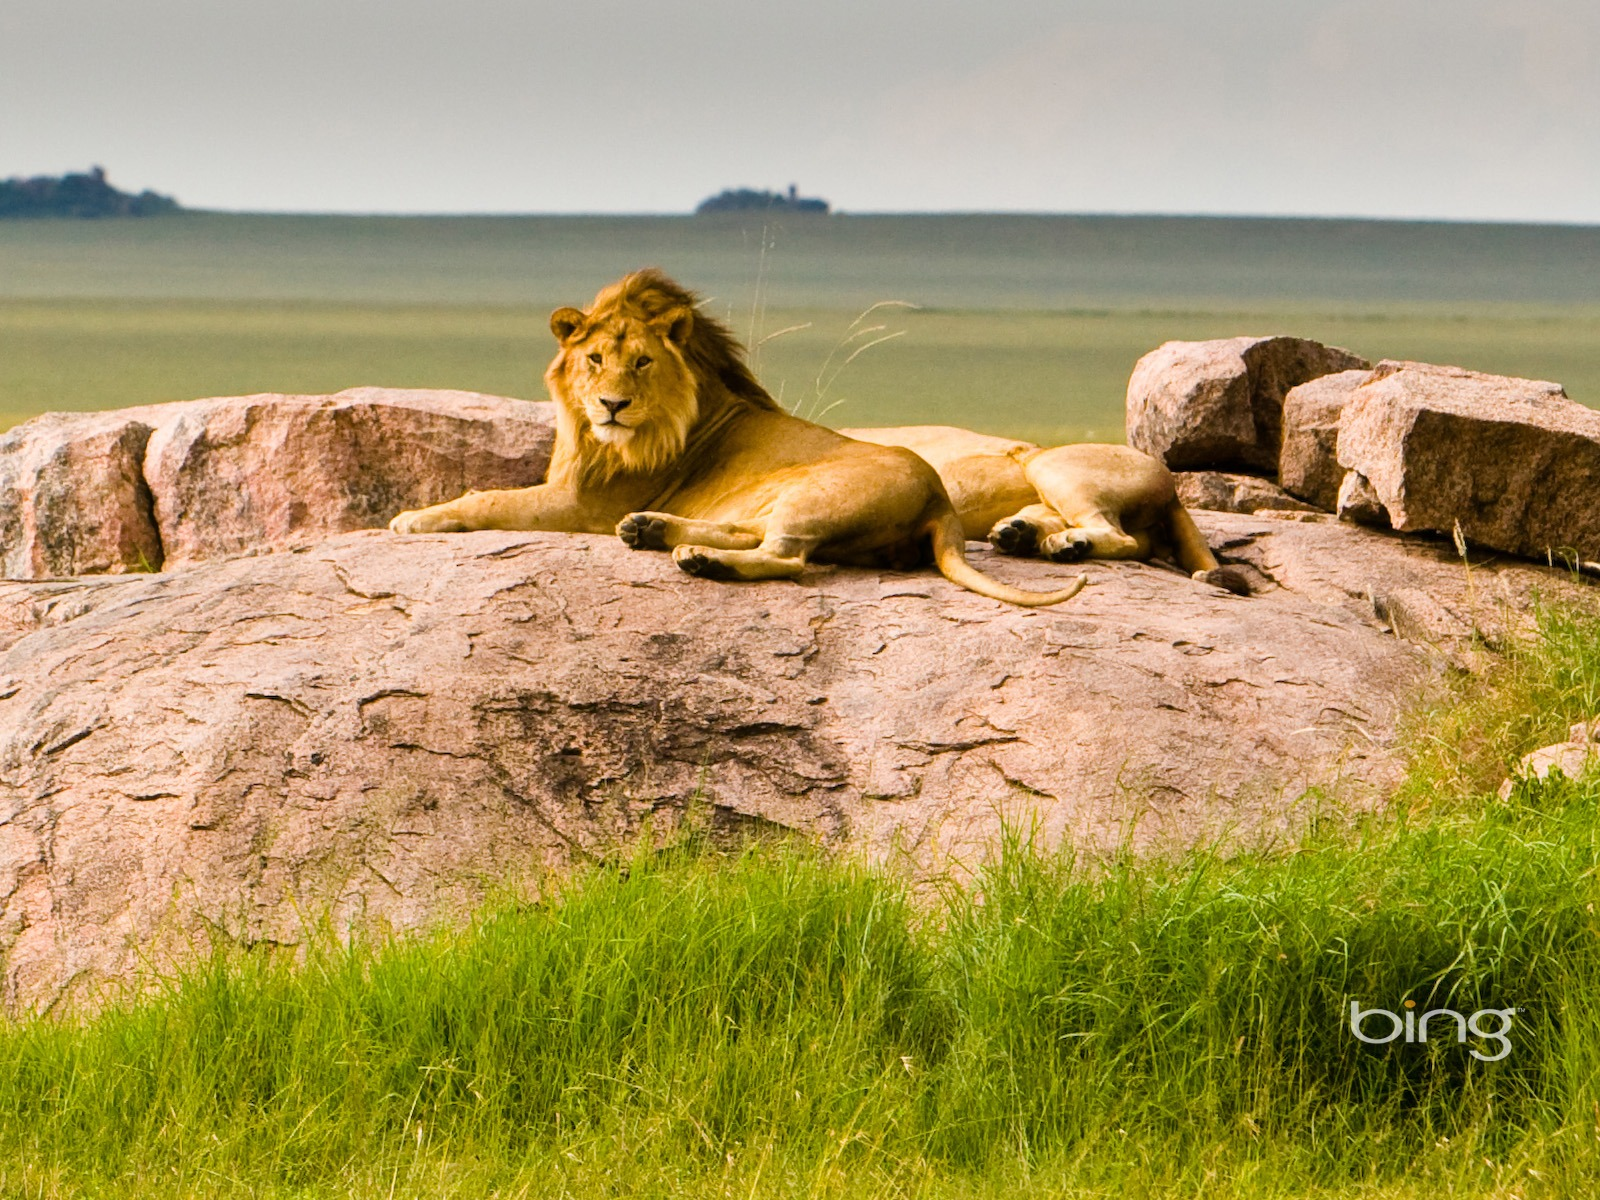 Description: Tanzania Serengeti National Park Lions-Bing Wallpaper ...: 10wallpaper.com/down/tanzania_serengeti_national_park_lions-bing...